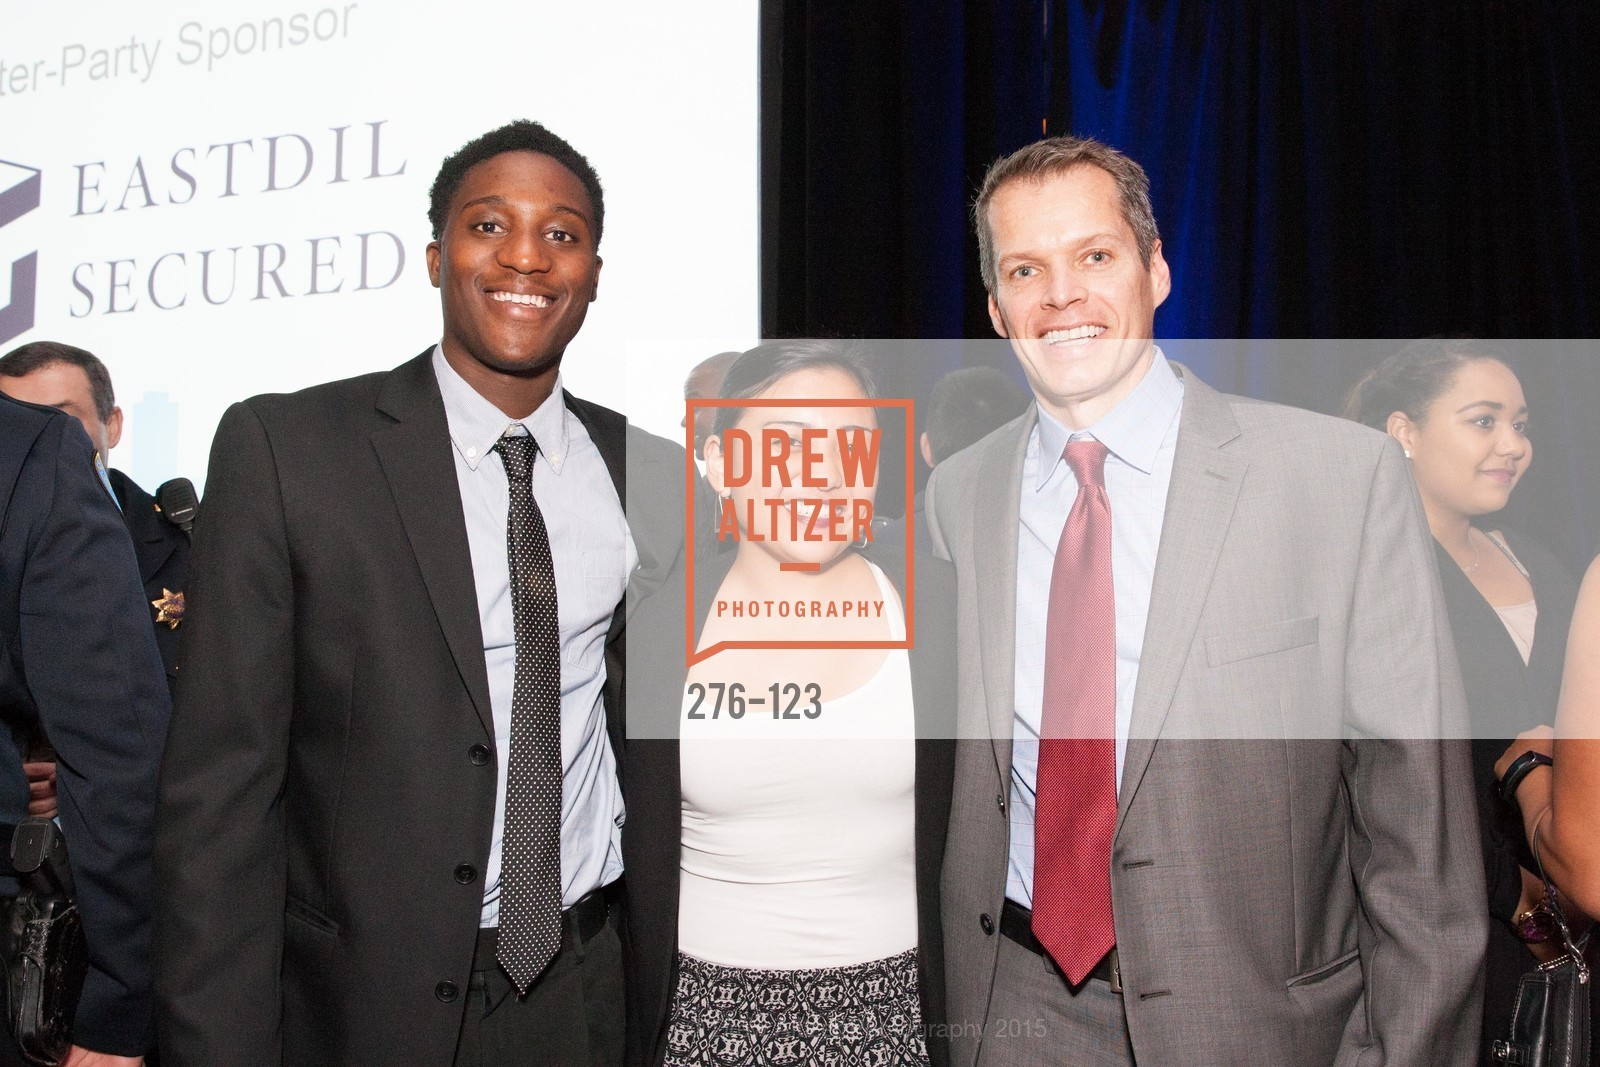 Khari Brown, Aeris Velasco, Rob Connolly, 2015 Boys and Girls Club Annual Gala, The Fairmont San Francisco. 950 Mason St, May 20th, 2015,Drew Altizer, Drew Altizer Photography, full-service agency, private events, San Francisco photographer, photographer california